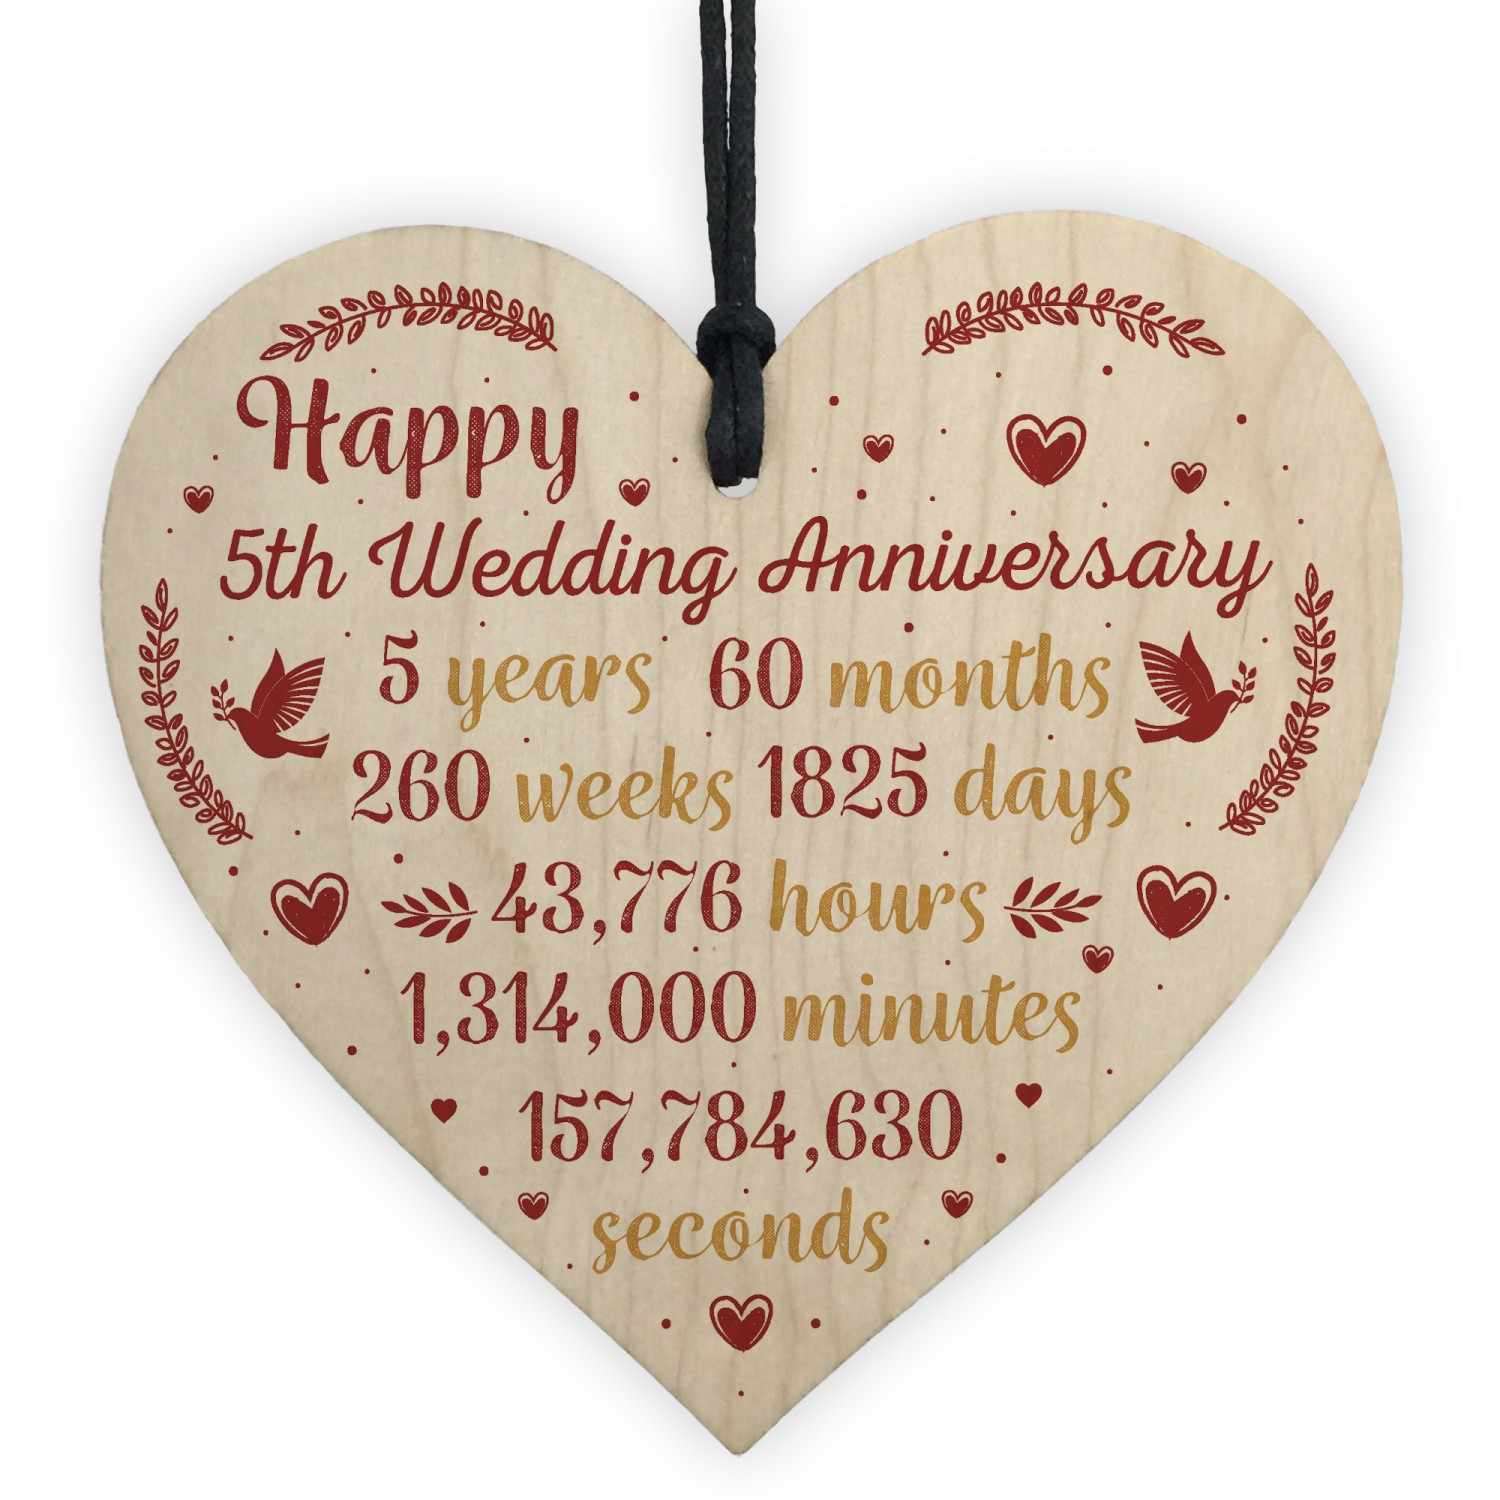 5th Anniversary Gifts For Her: Handmade Wood Heart Plaque 5th Wedding Anniversary Gift